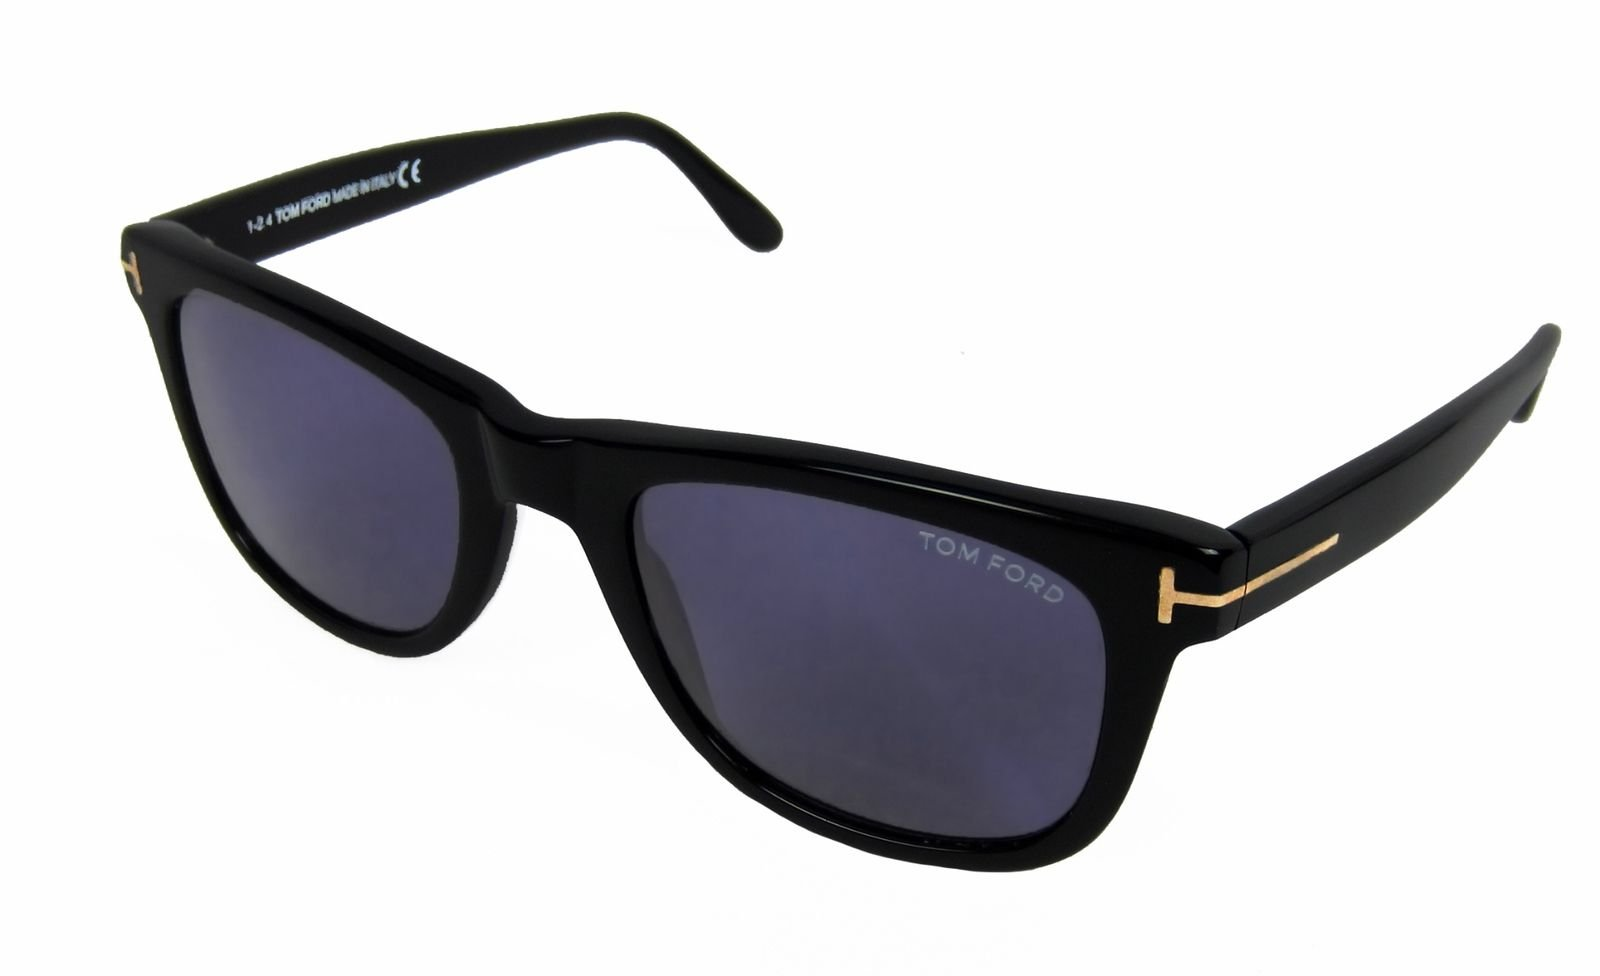 3cc6ce4ab94 Details about Tom Ford Leo Square Sunglasses Black with Gold Accent Blue  Solid Lenses 52 mm